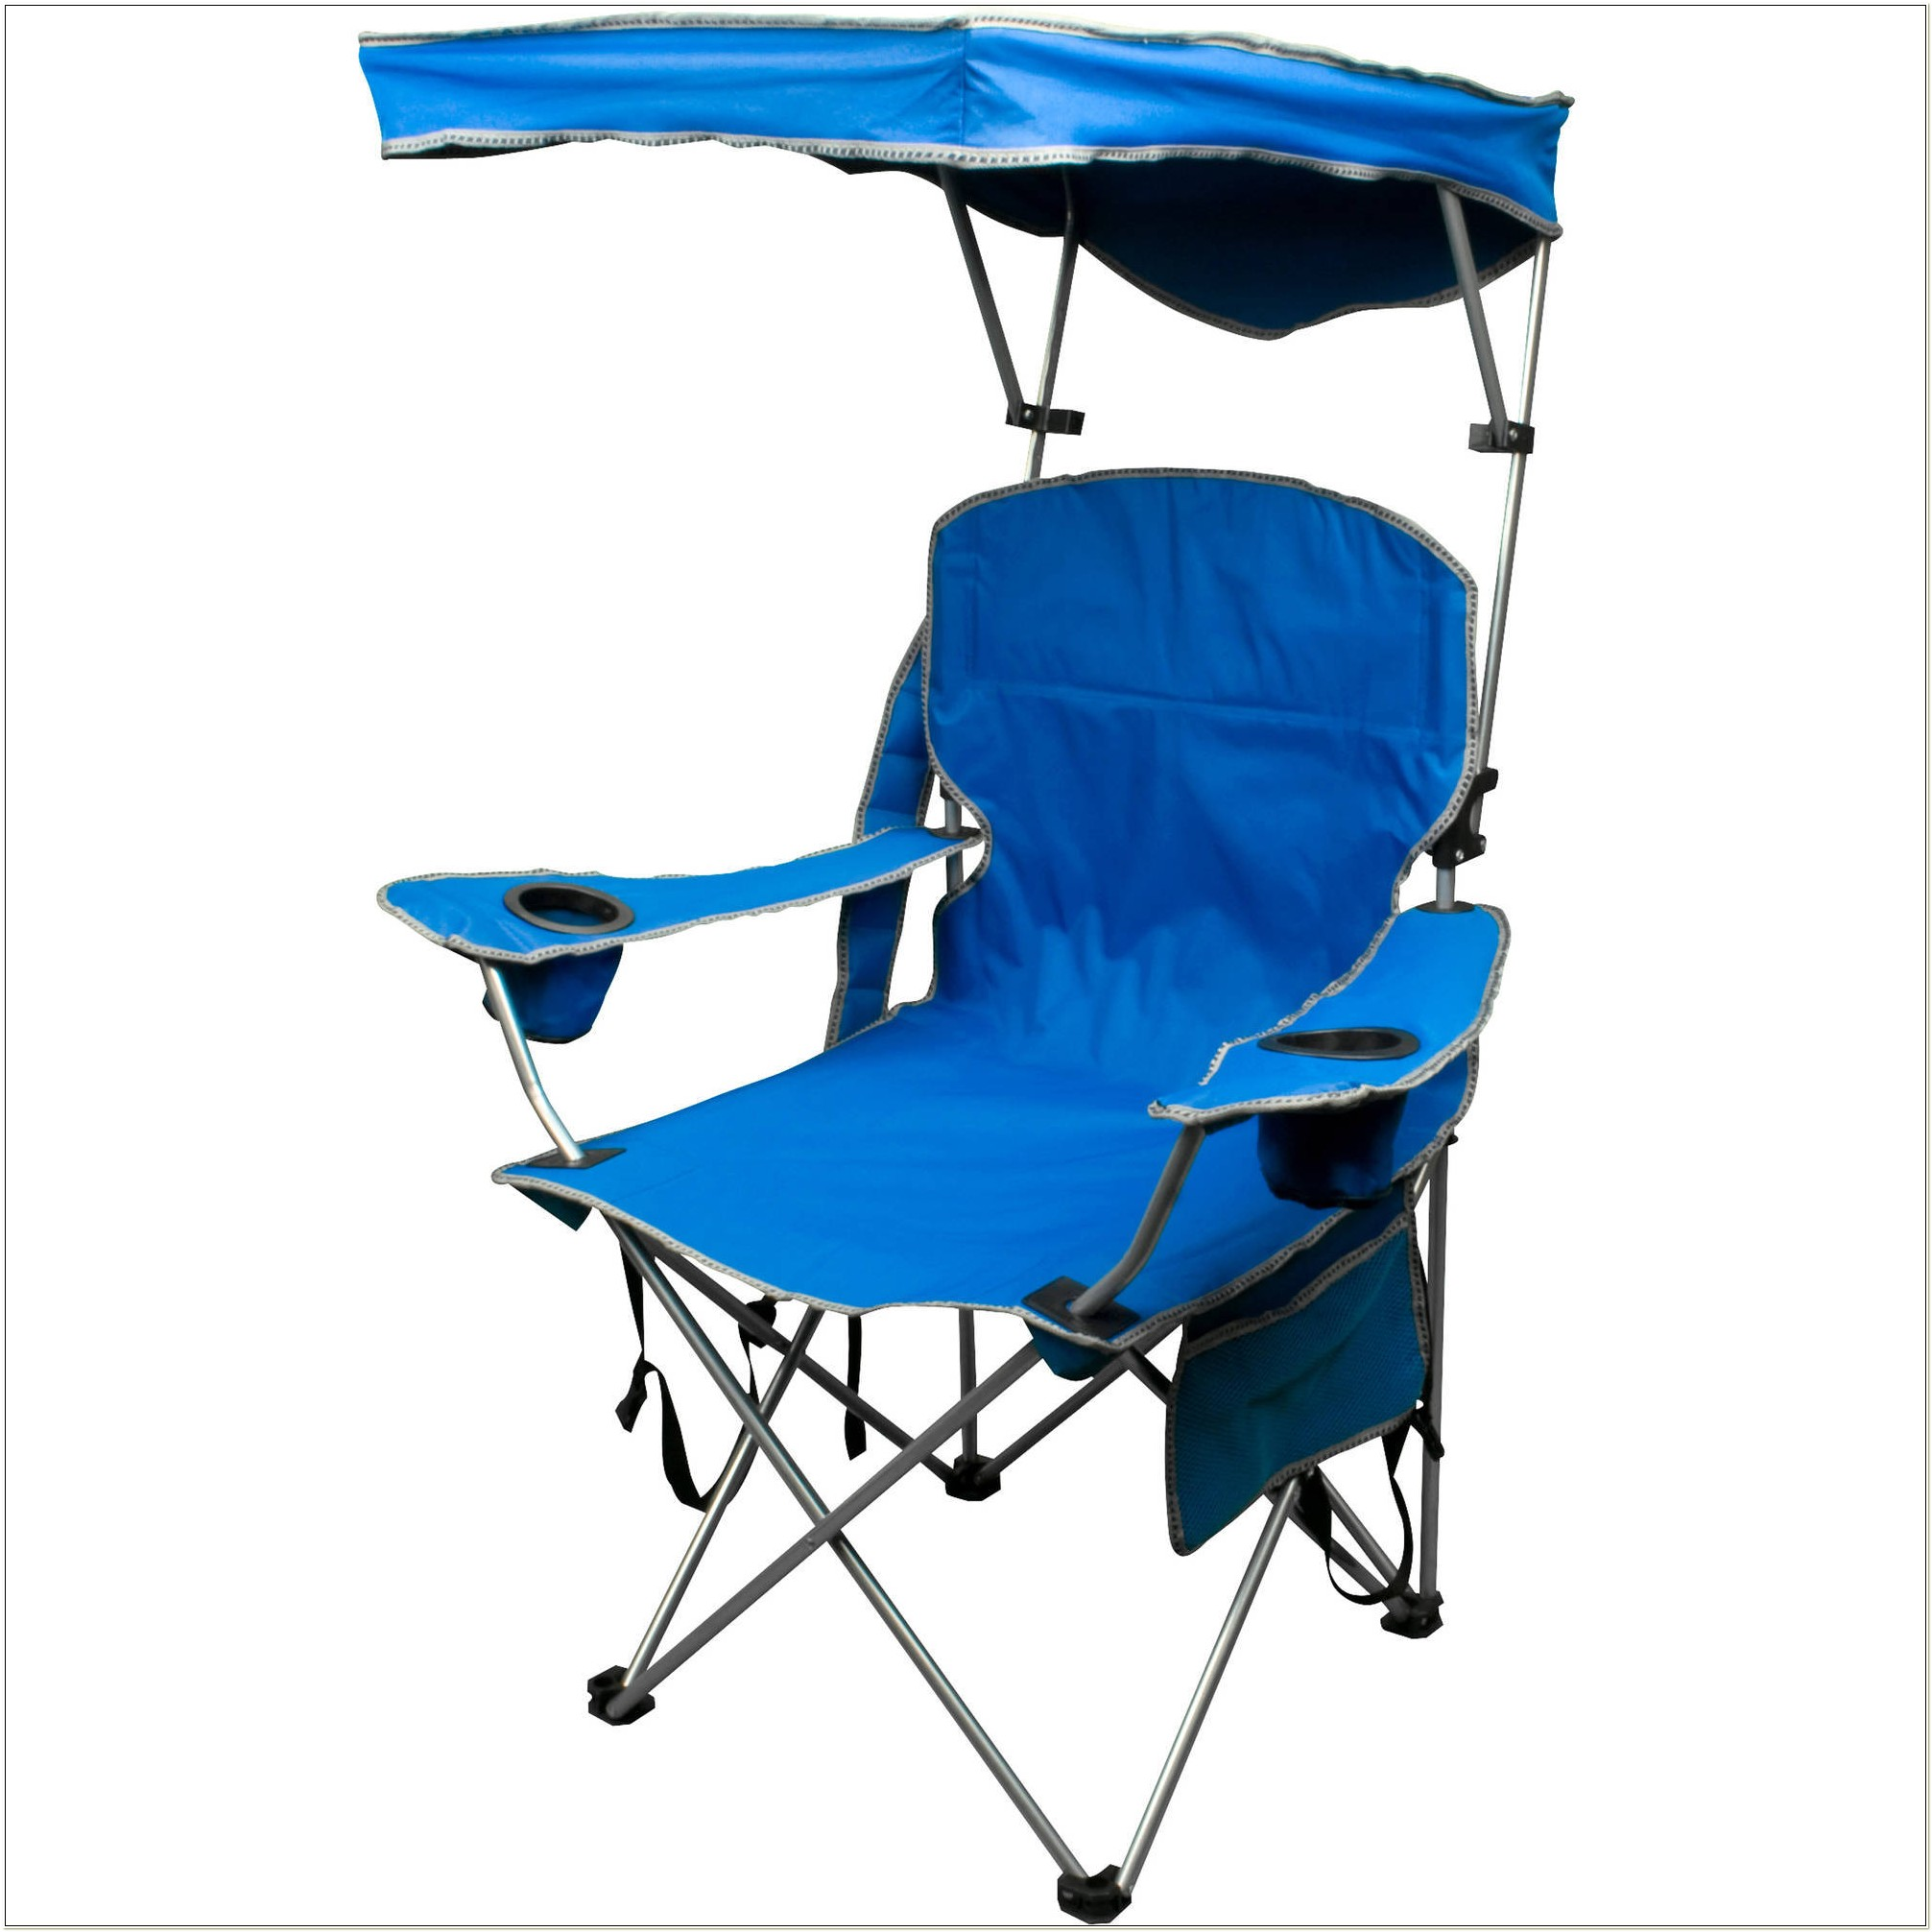 Collapsible Chair With Canopy